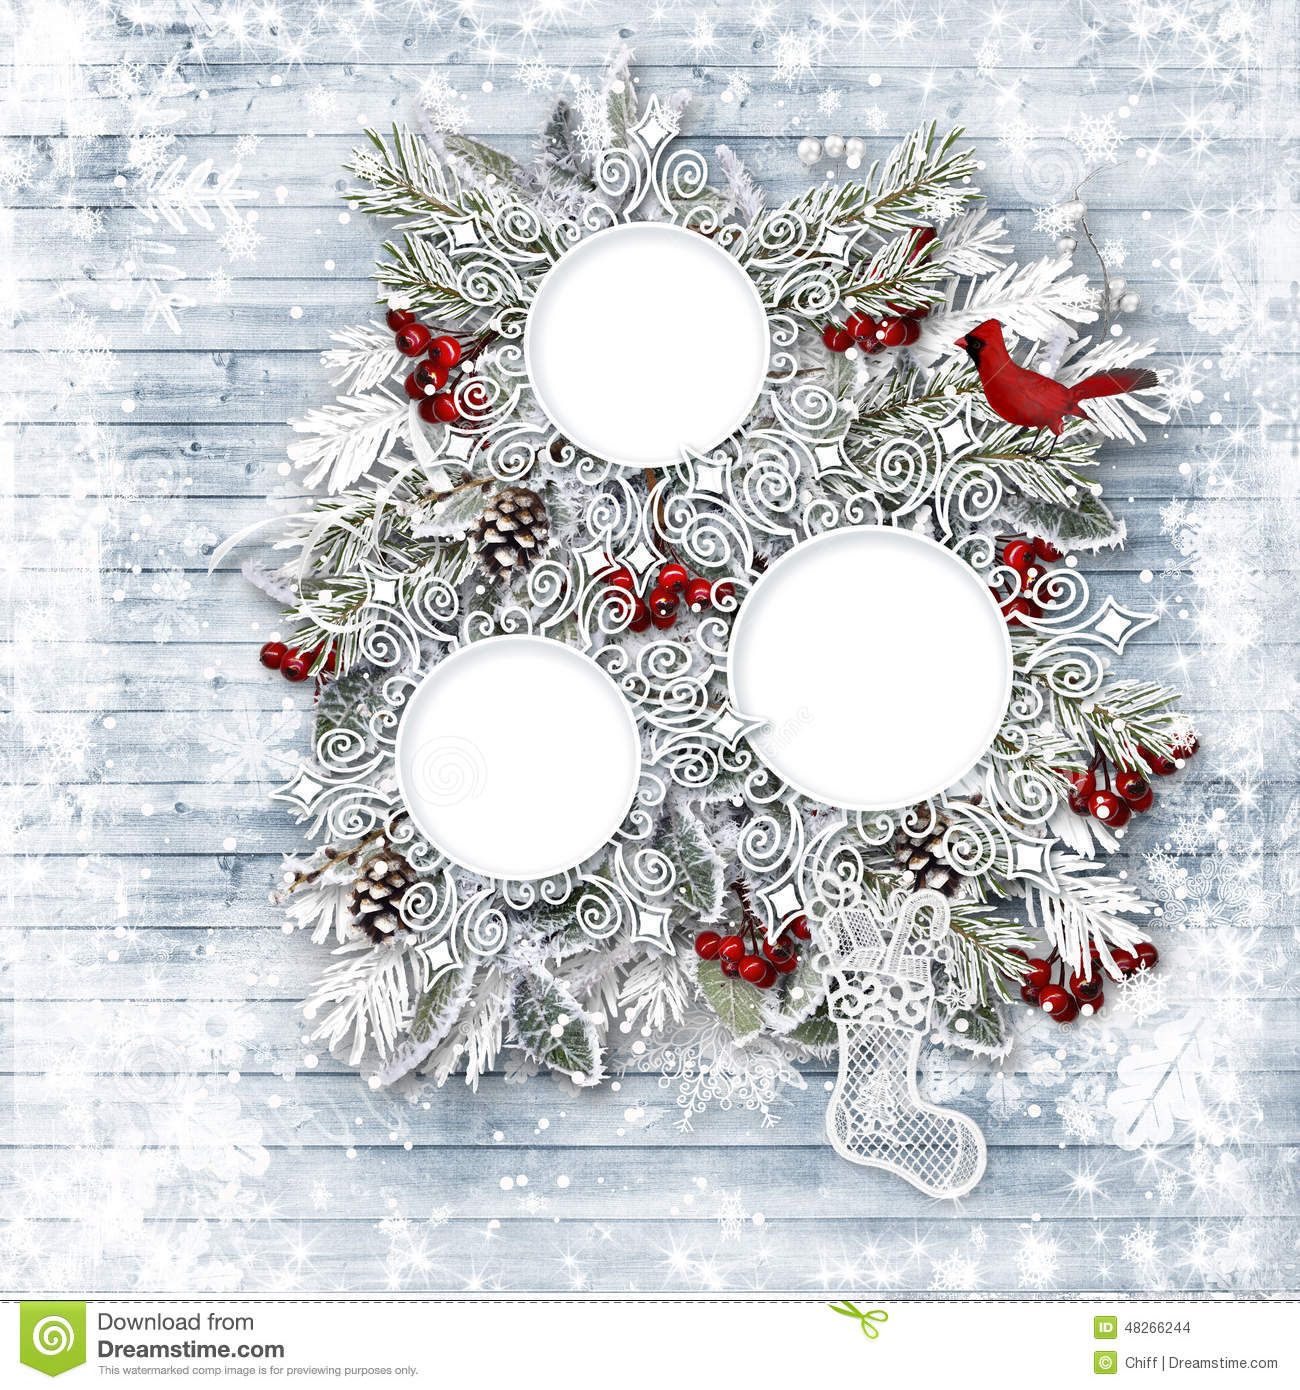 Merry Christmas Family Card Winter Wooden Background